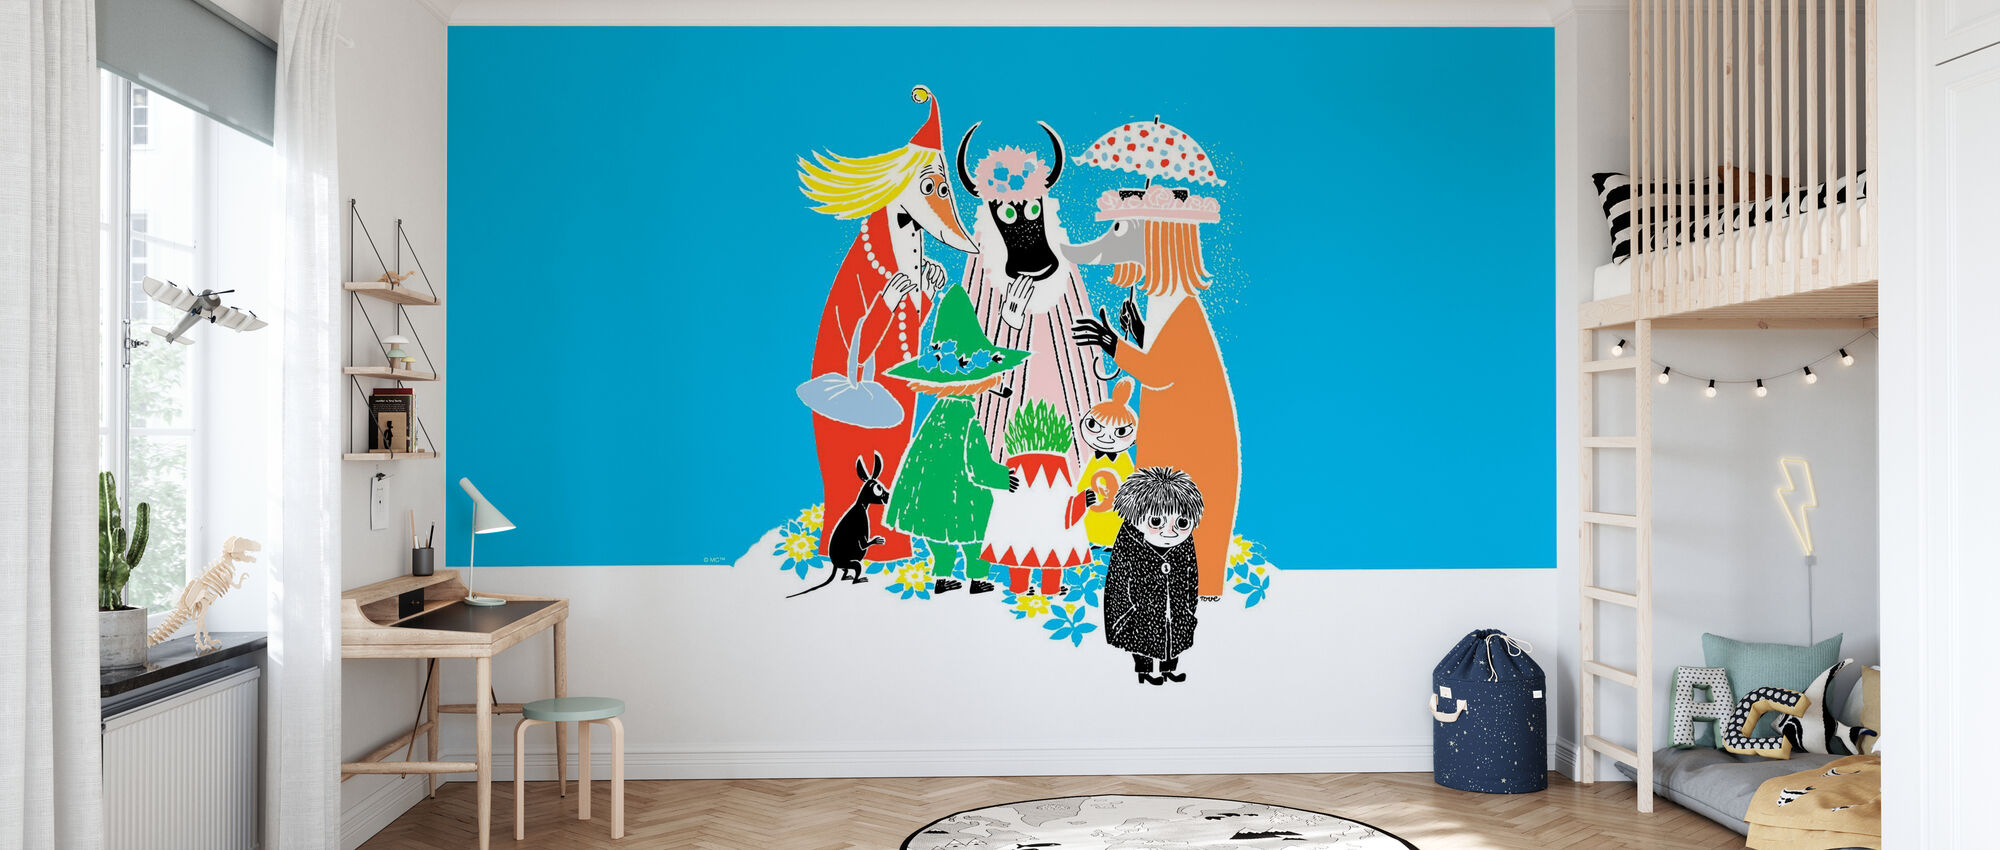 Moomin - Who will Comfort Toffle? - Wallpaper - Kids Room